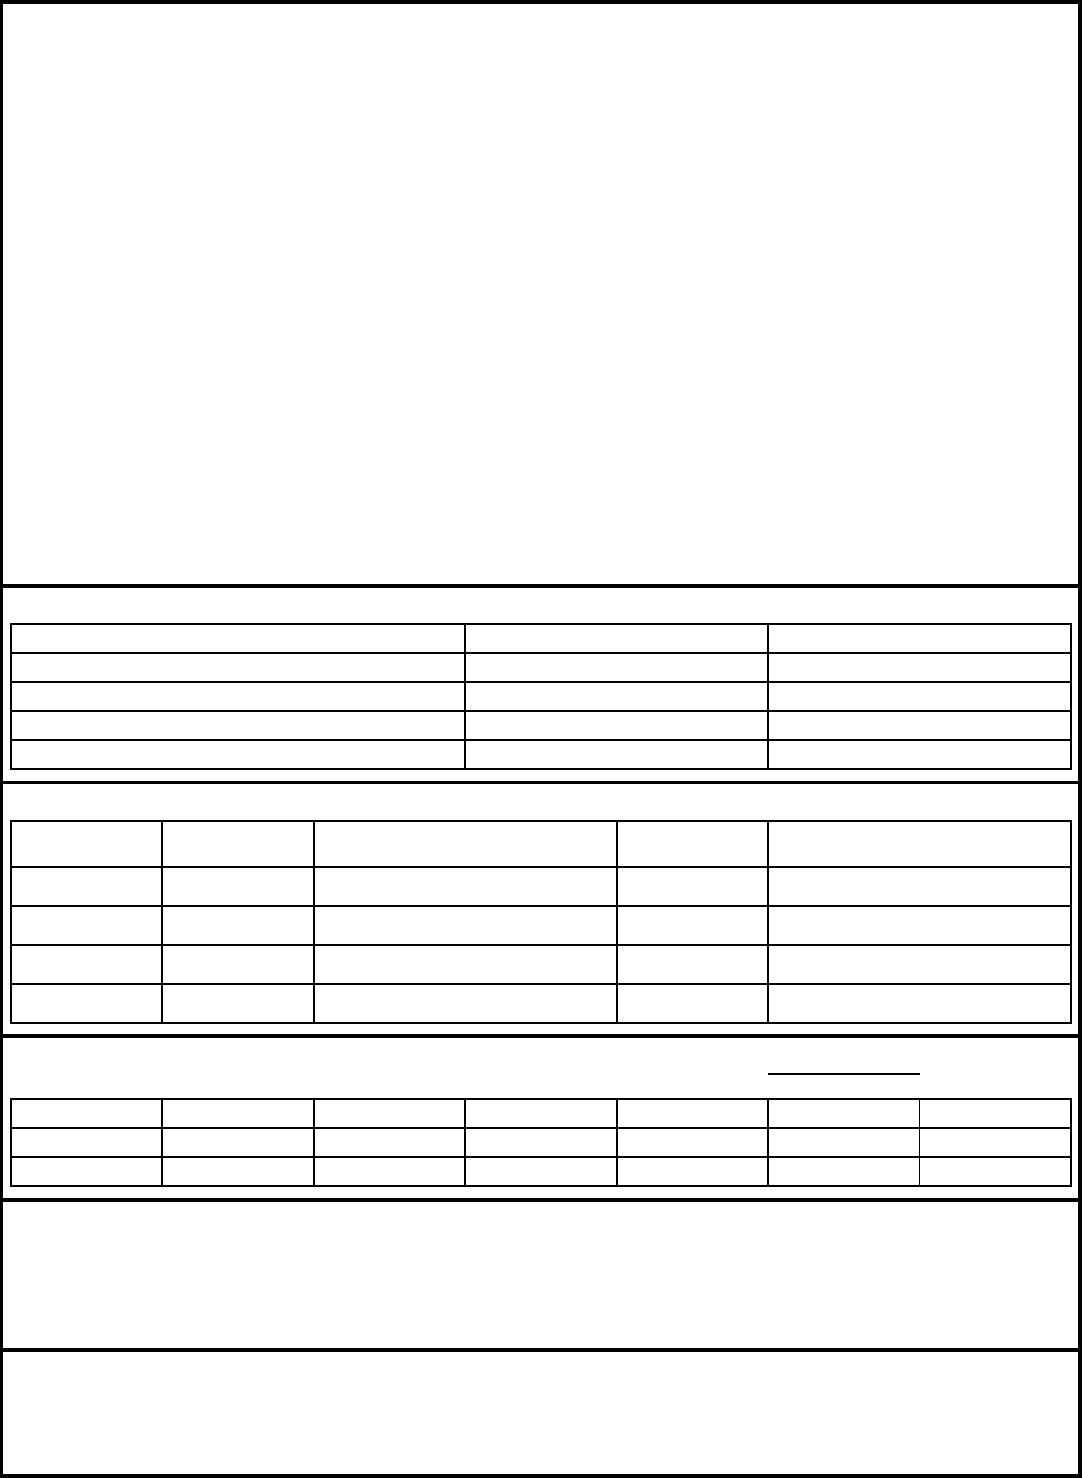 Free Printable Cheddar\'s Job Application Form